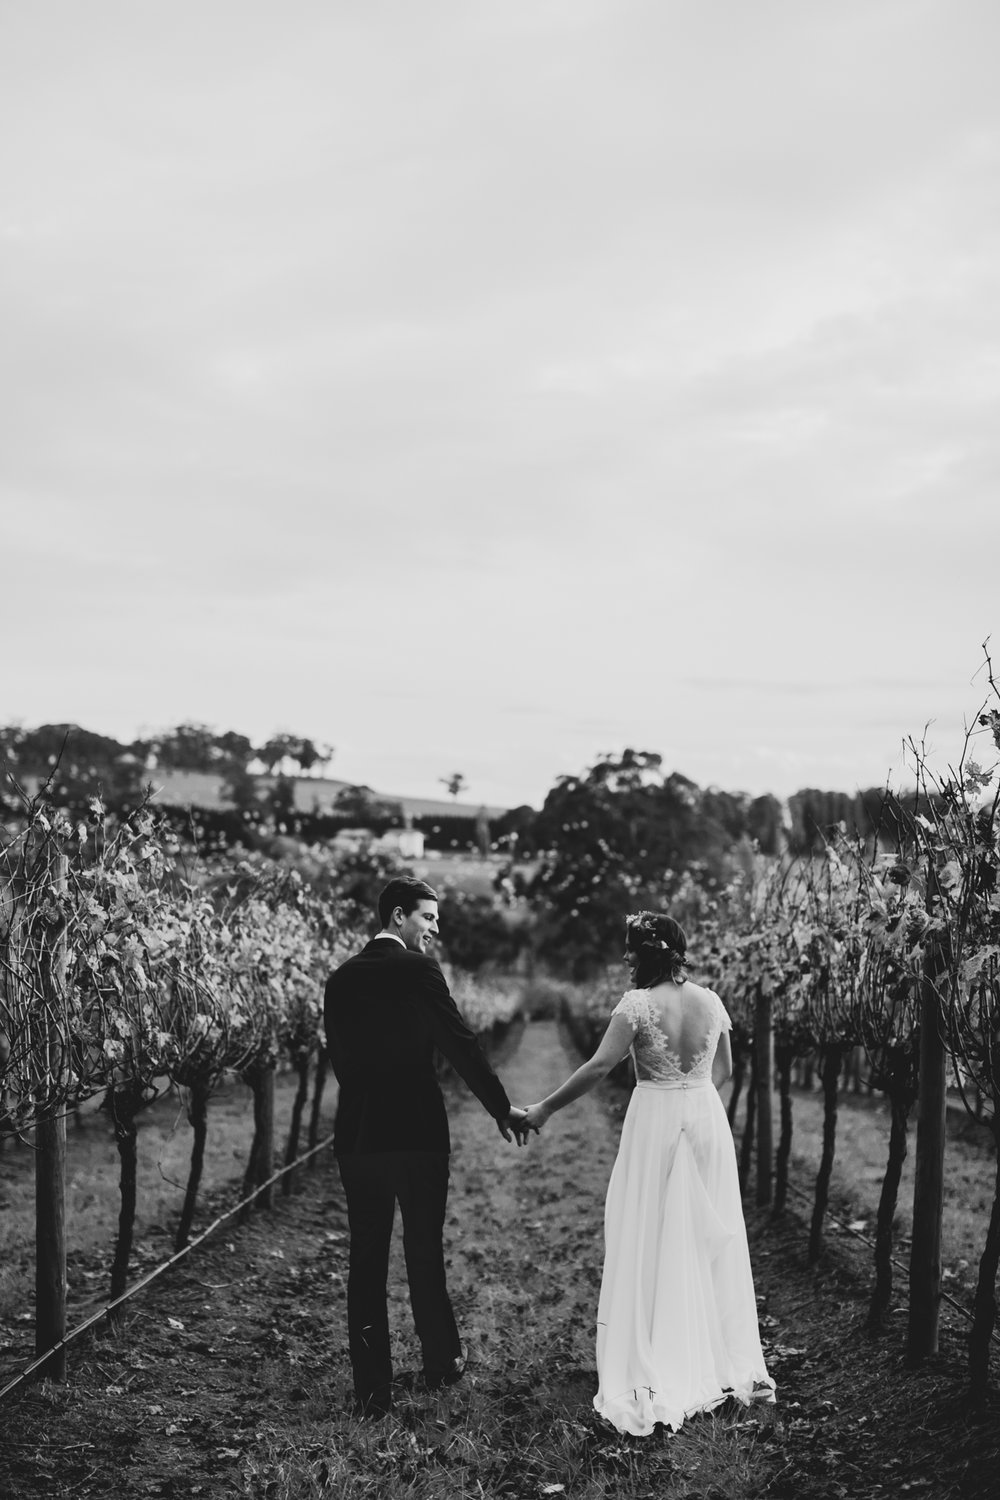 Lauren & Jono - Centennial Vineyards - Bowral Wedding - Samantha Heather Photography-127.jpg